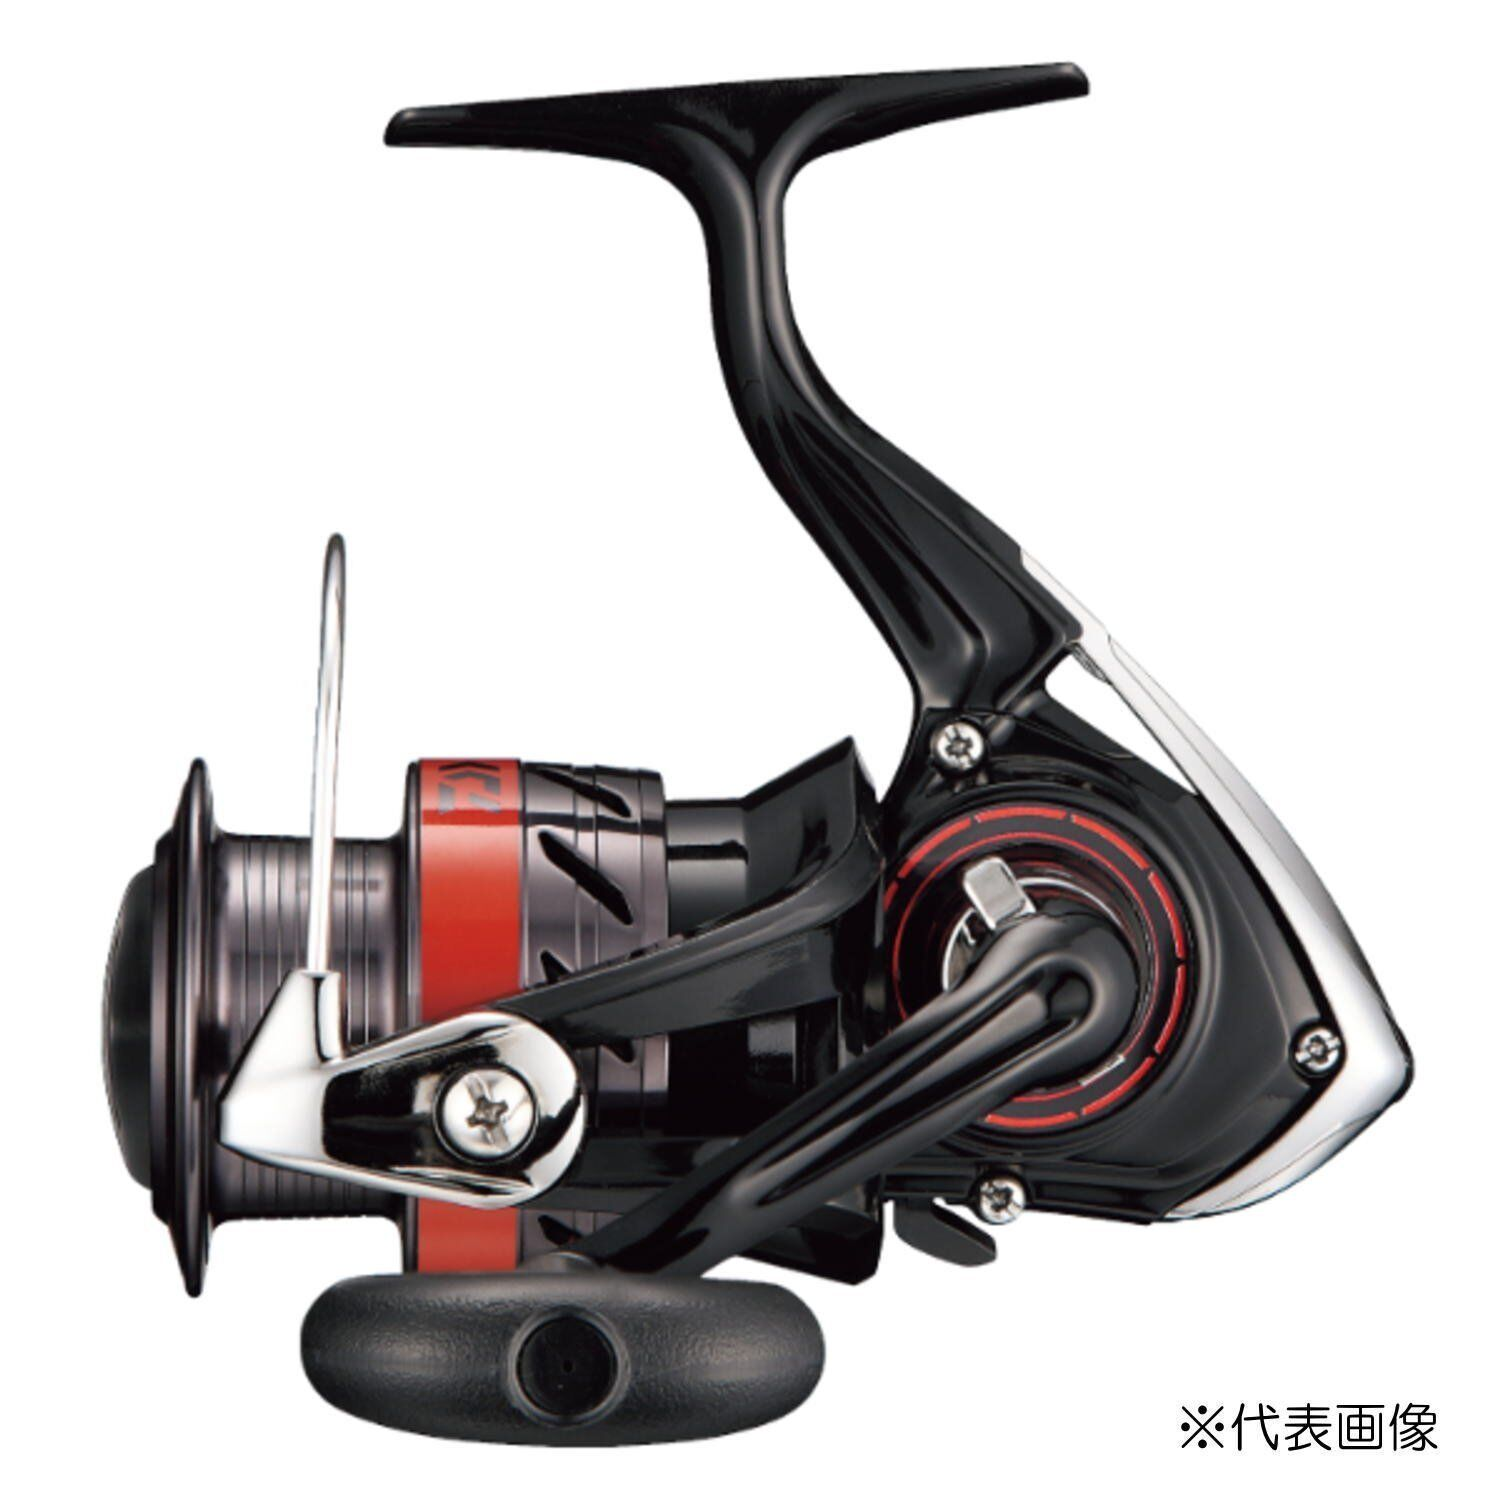 Daiwa  Spinning Reels 17 LIBERTY CLUB 3500 from japan【 Brand New in Box 】